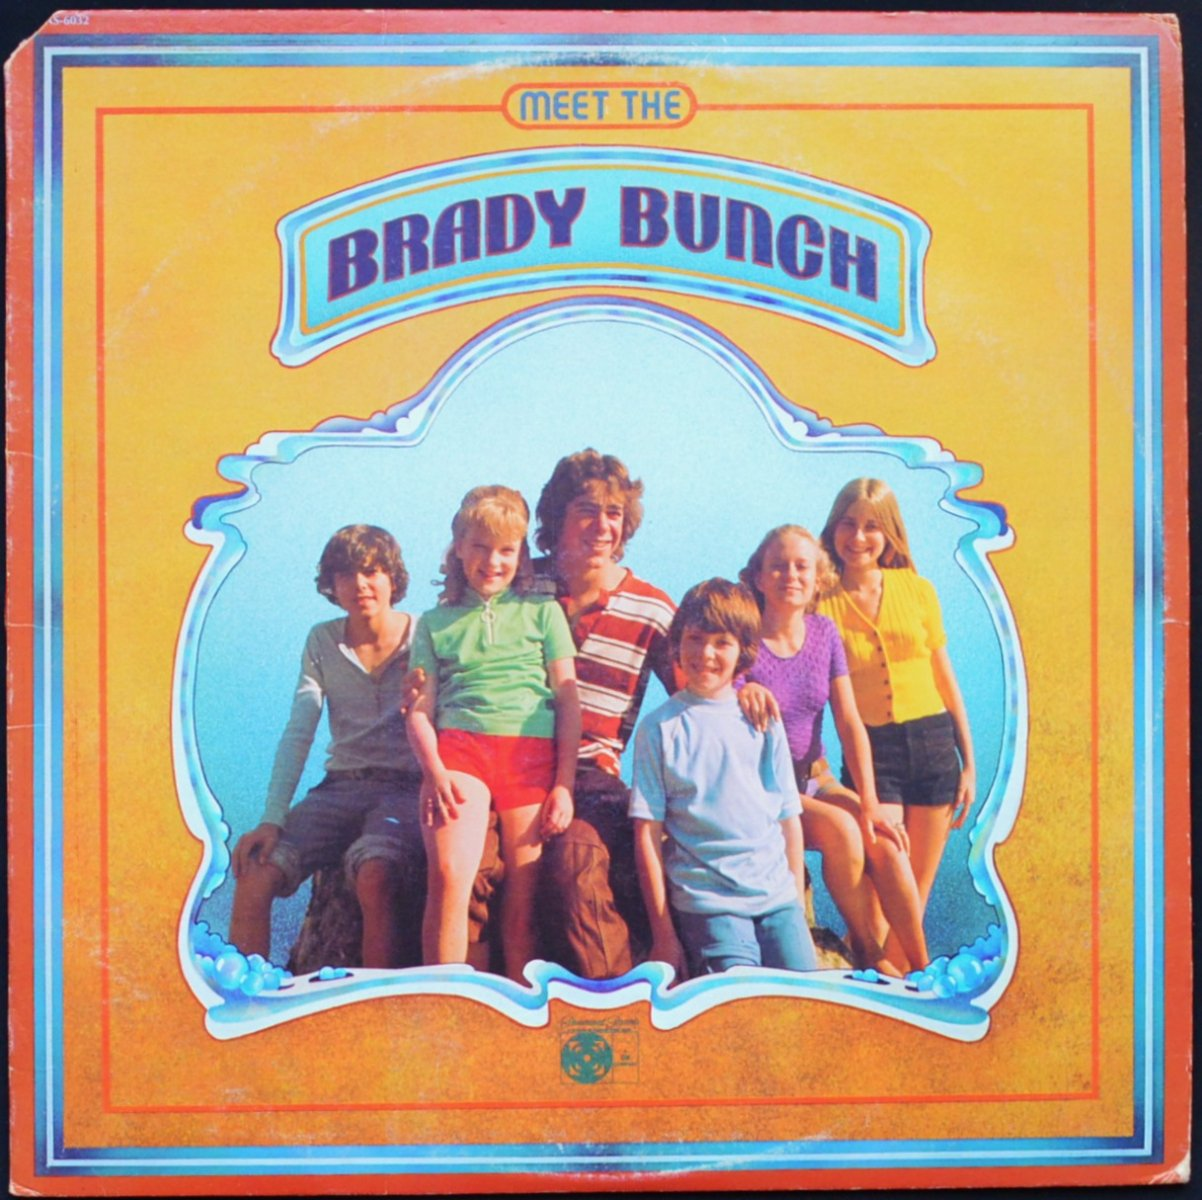 THE BRADY BUNCH / MEET THE BRADY BUNCH (LP)